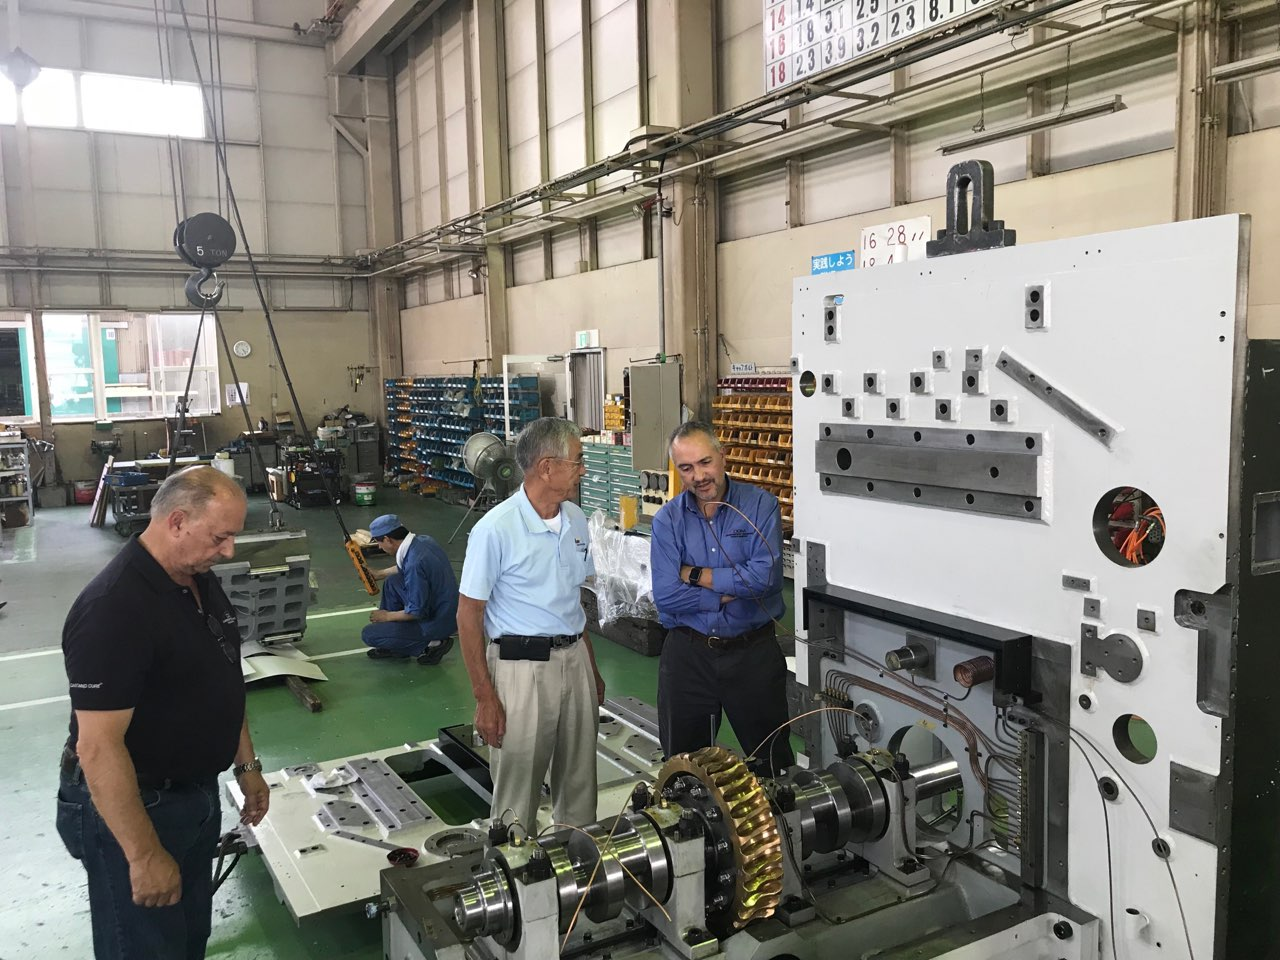 Walter Sussuma, Mr. Iijima and Paul Torres at the Iijima factory Koga, Japan July 2018